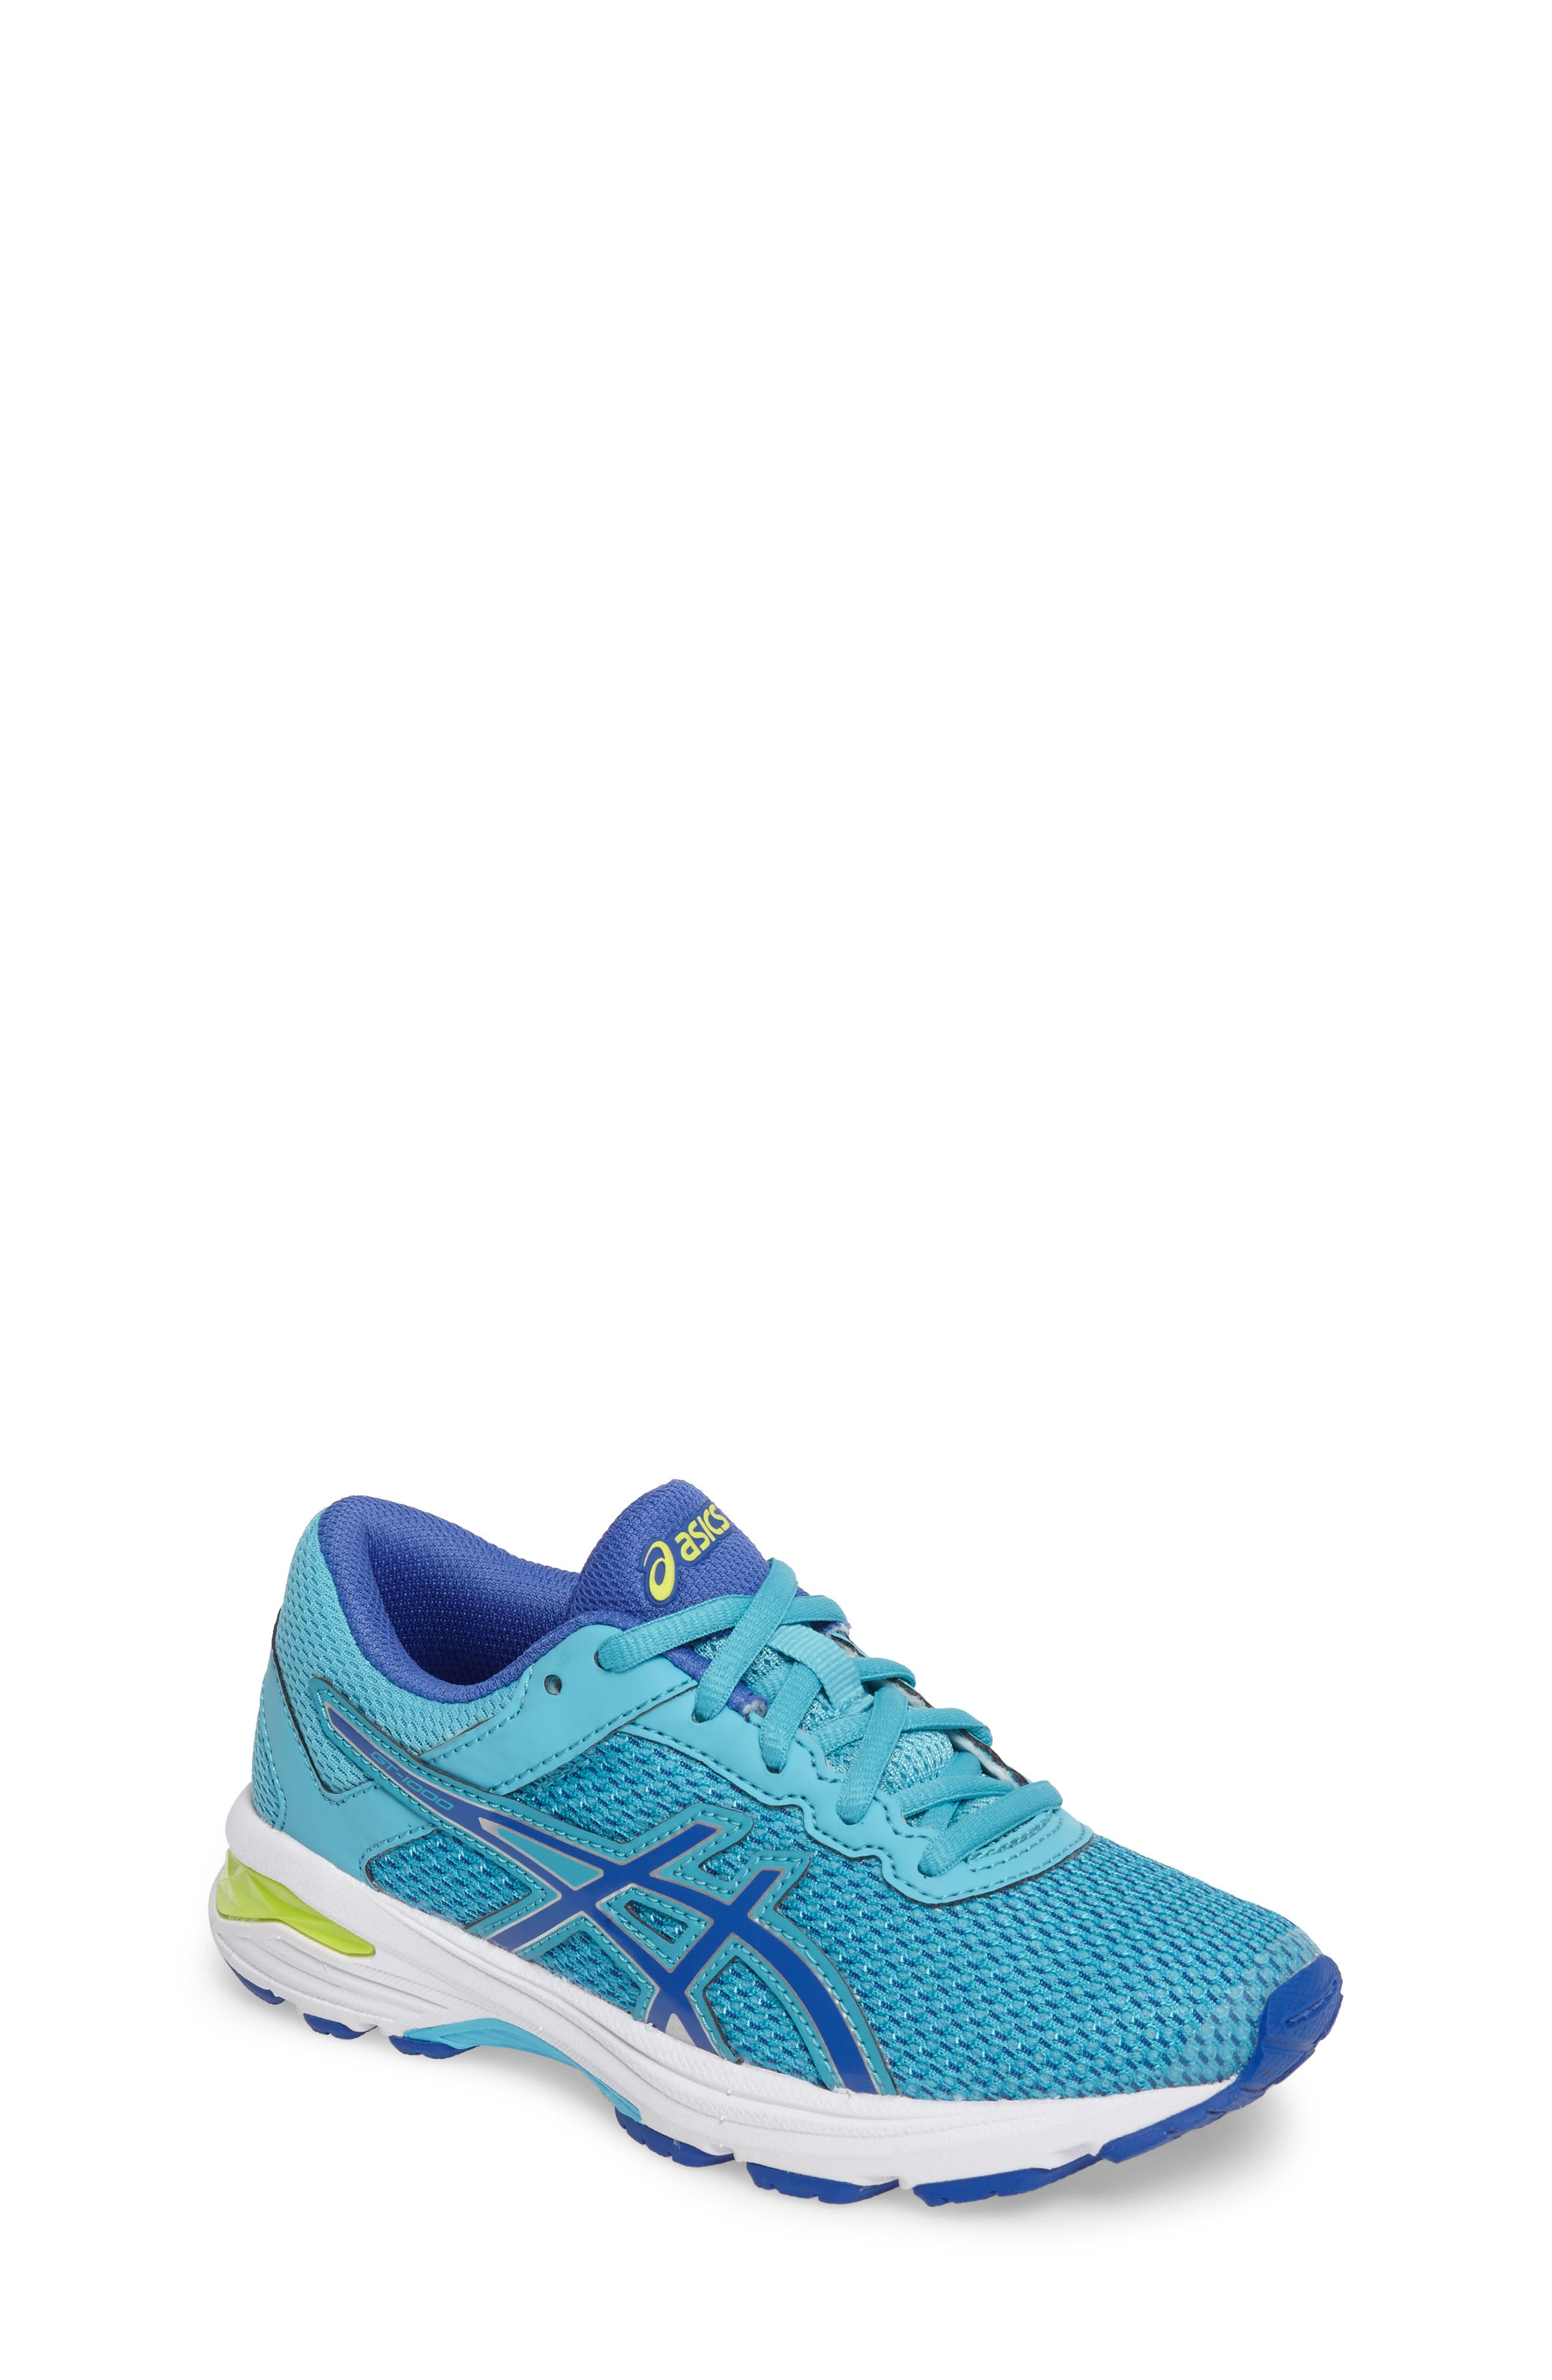 ASICS<SUP>®</SUP> Asics GT-1000<sup>™</sup> 6 GS Sneaker